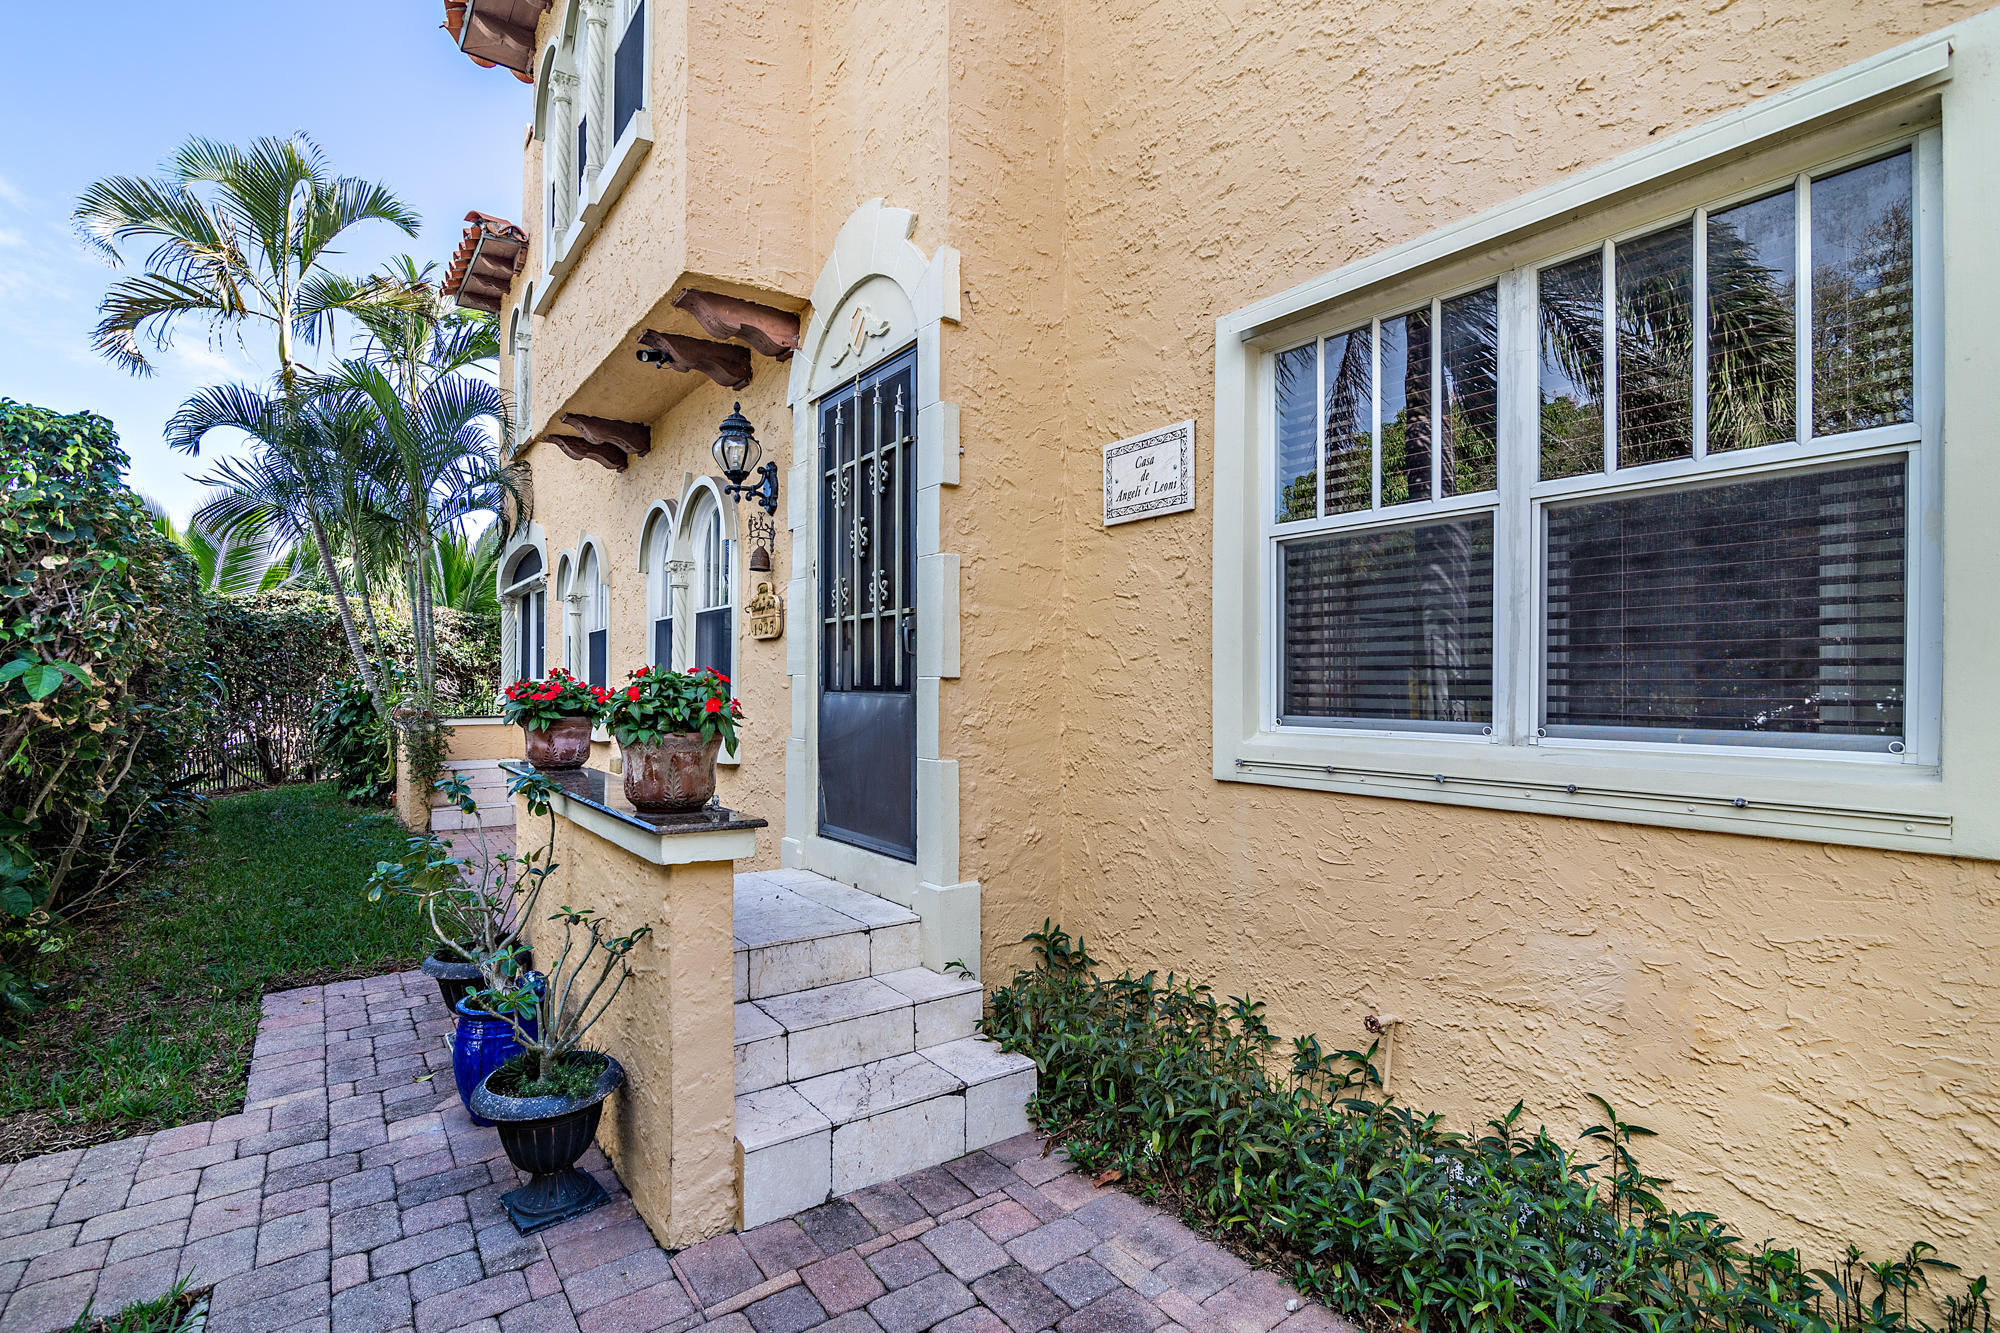 COLLEGE PARK LAKE WORTH REAL ESTATE